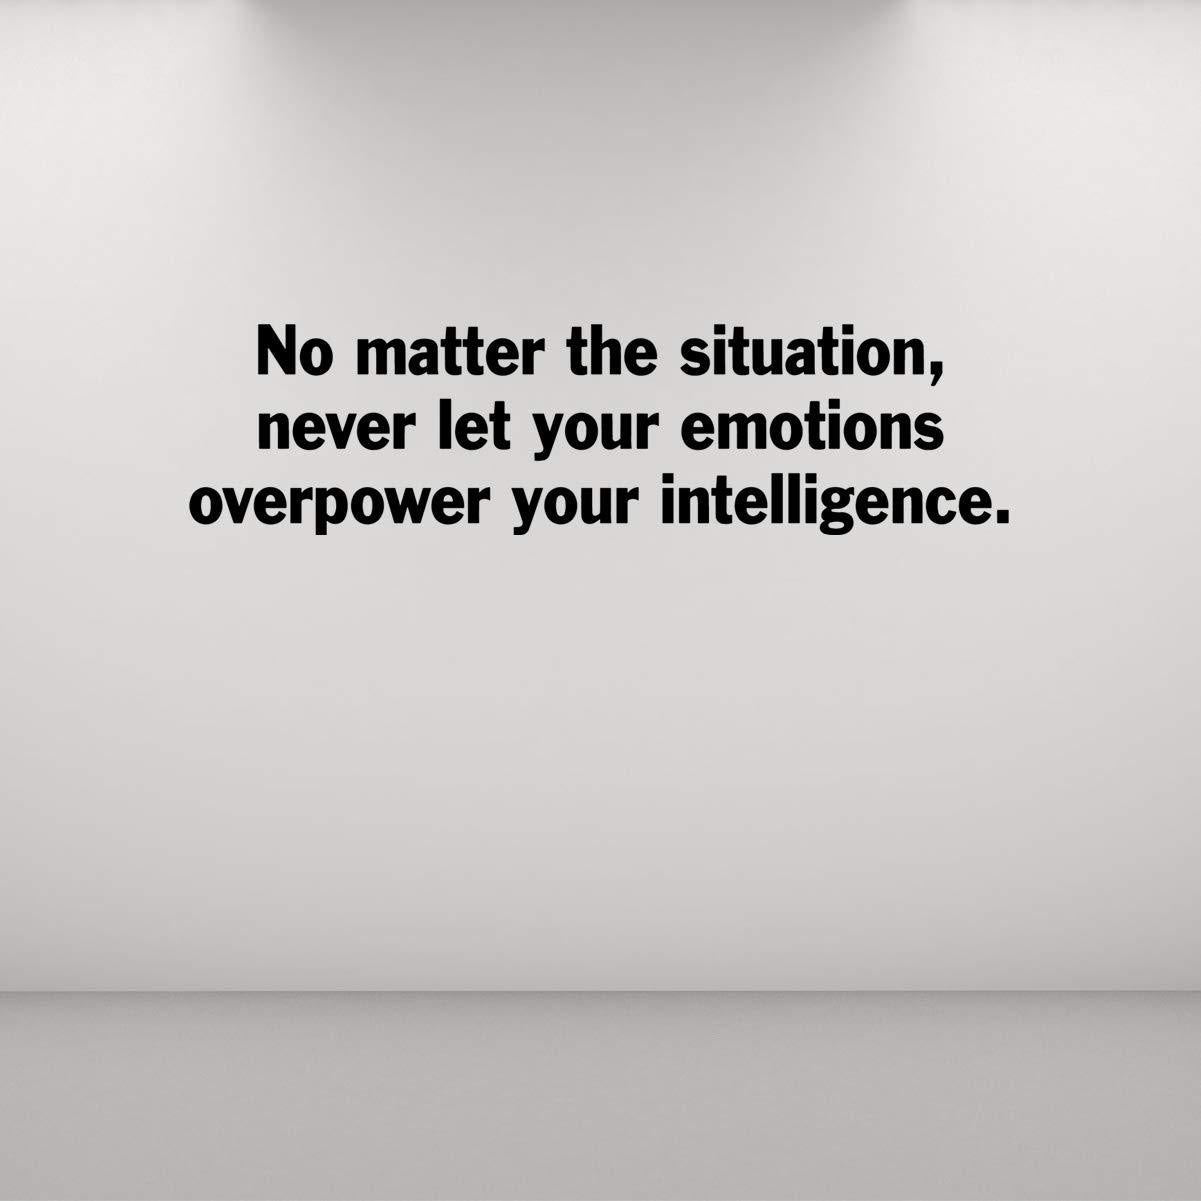 VWAQ No Matter The Situation, Never Let Your Emotions Overpower Your Intelligence Quotes Wall Decal - VWAQ Vinyl Wall Art Quotes and Prints